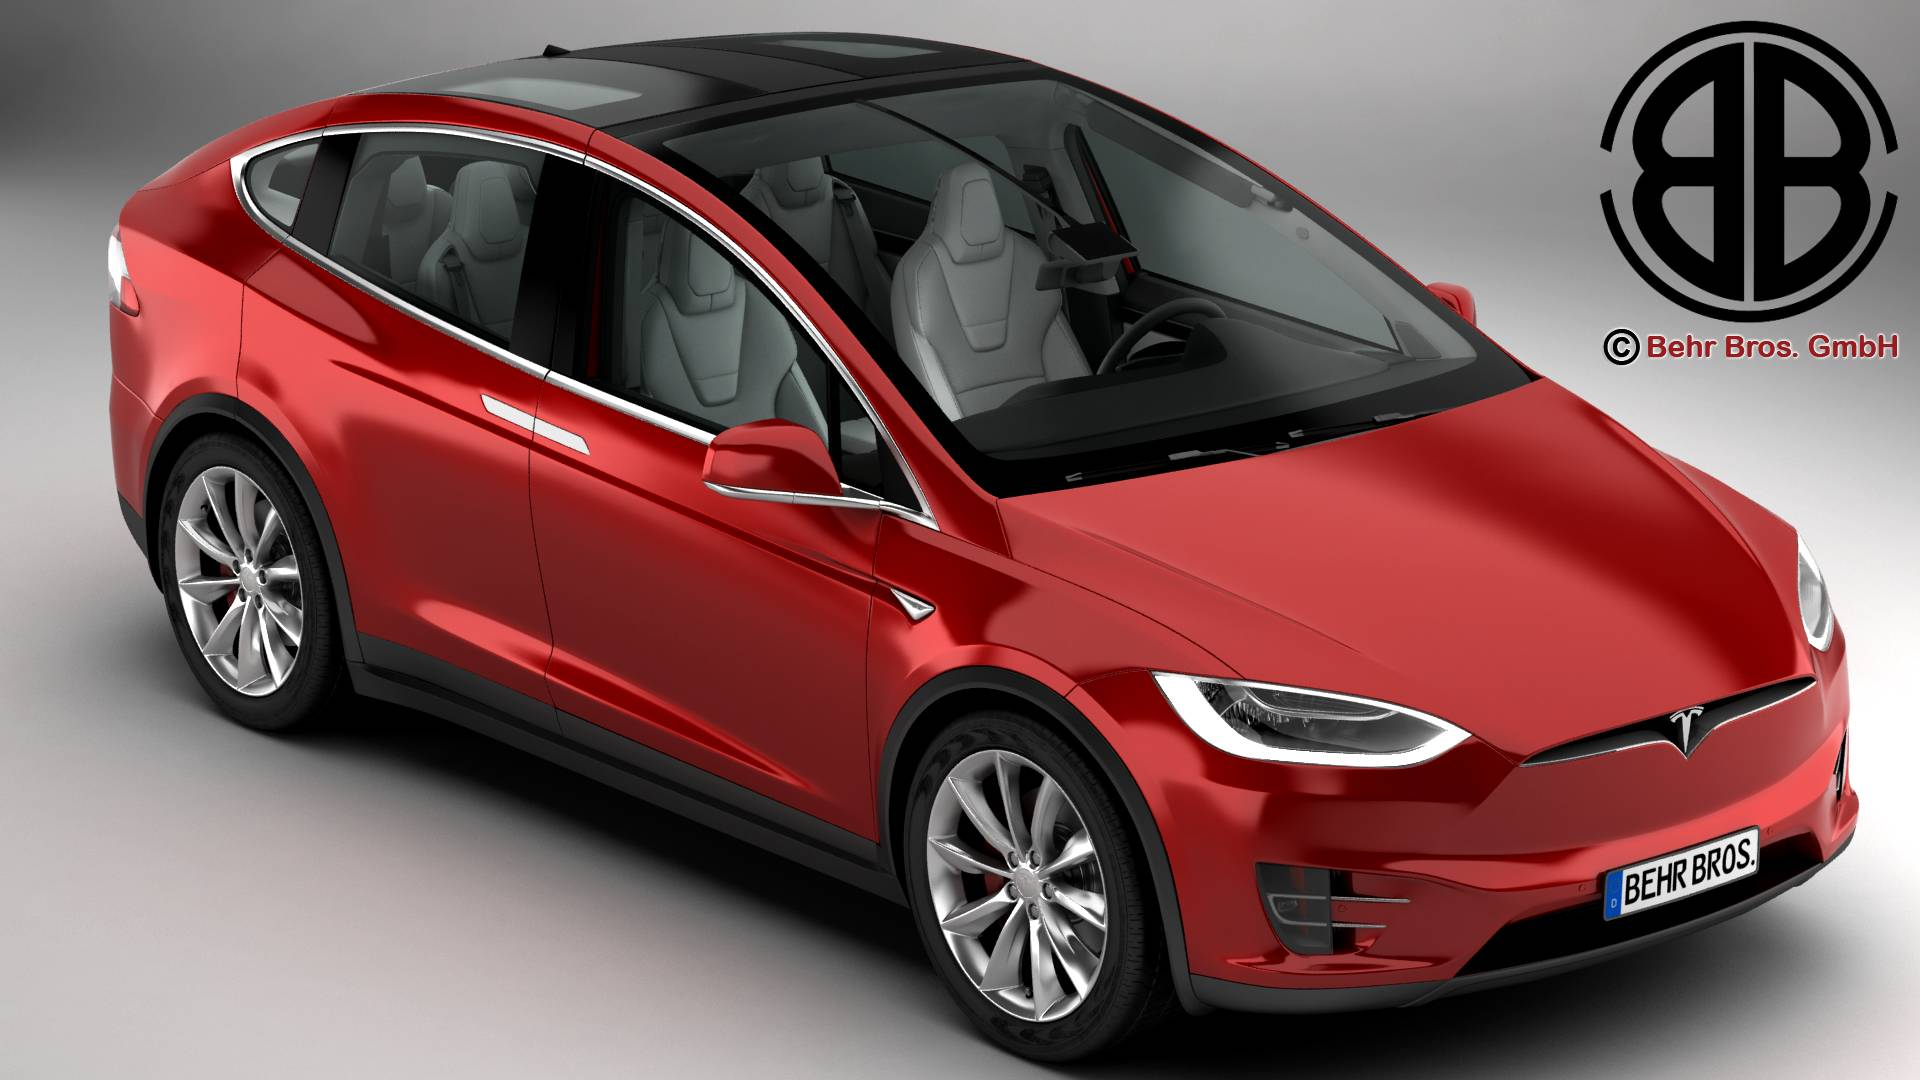 tesla model x 2017 3d model 3ds max fbx c4d lwo ma mb obj 221831